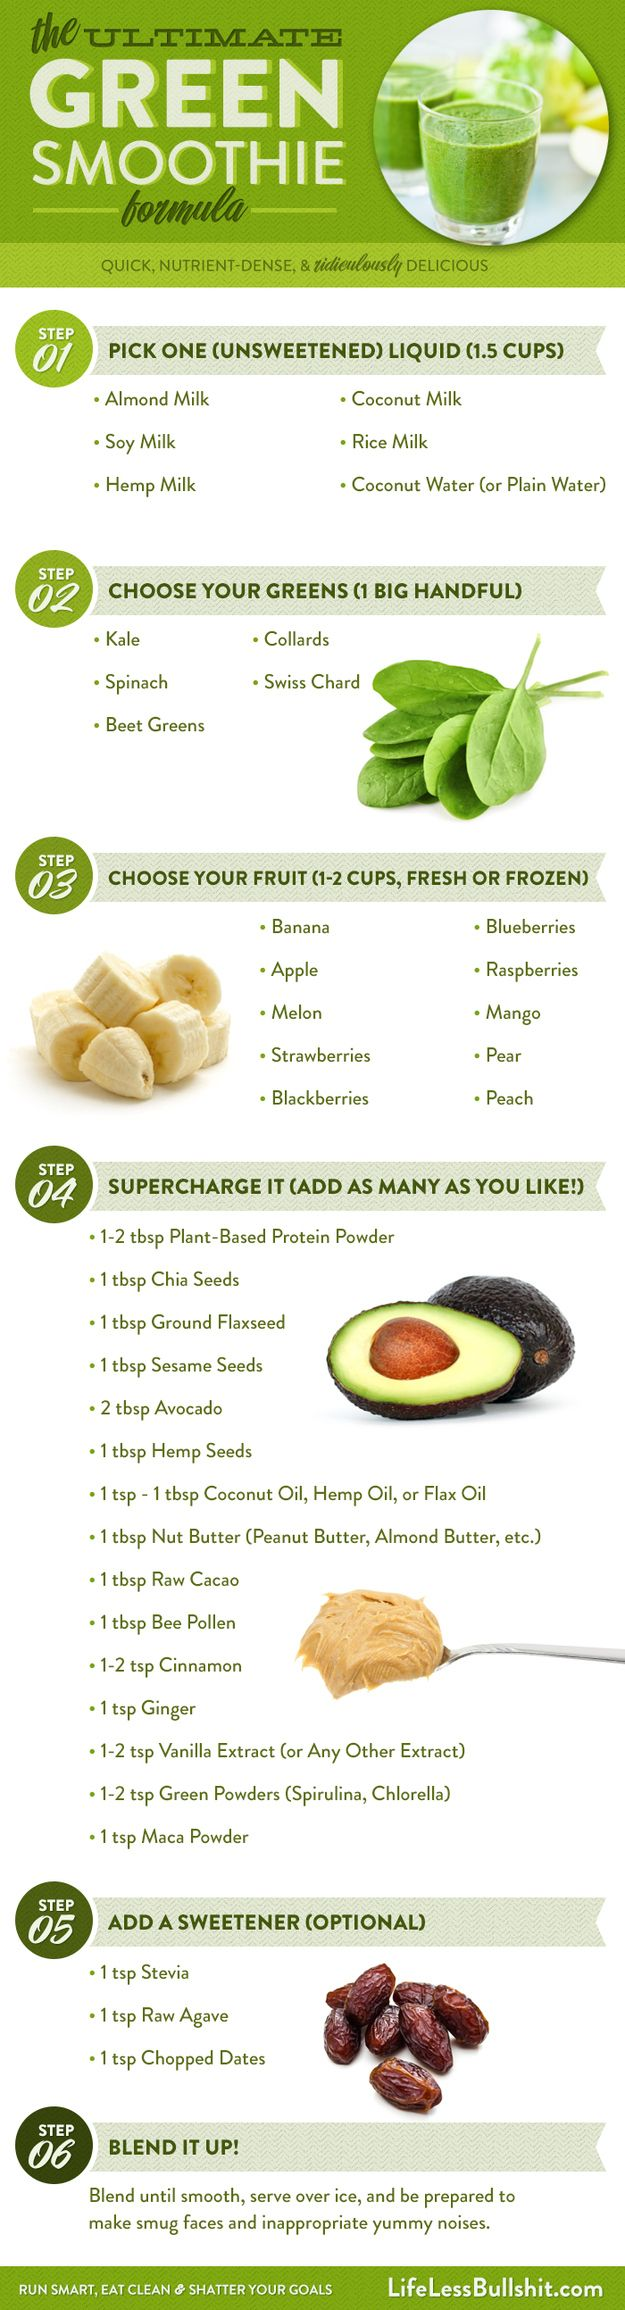 Make your own green smoothie!